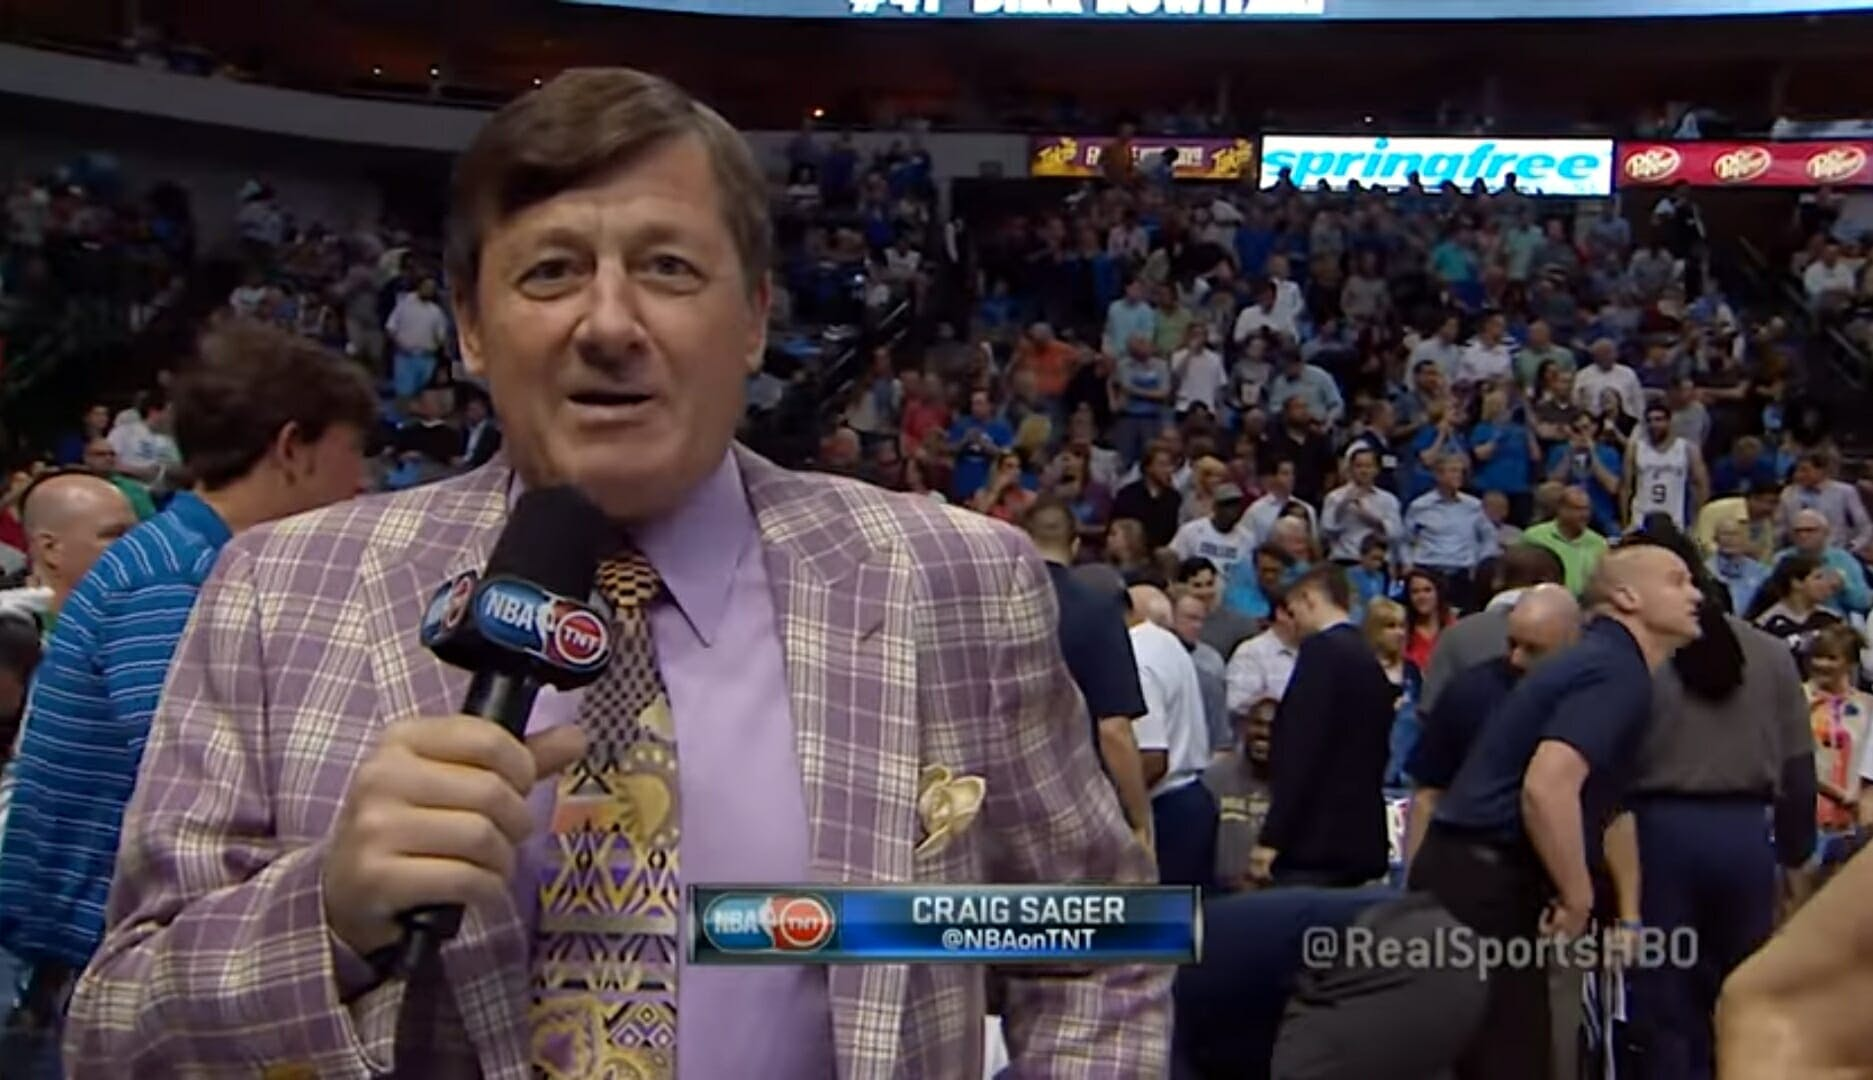 Free YouTube documentaries - craig sager real sports